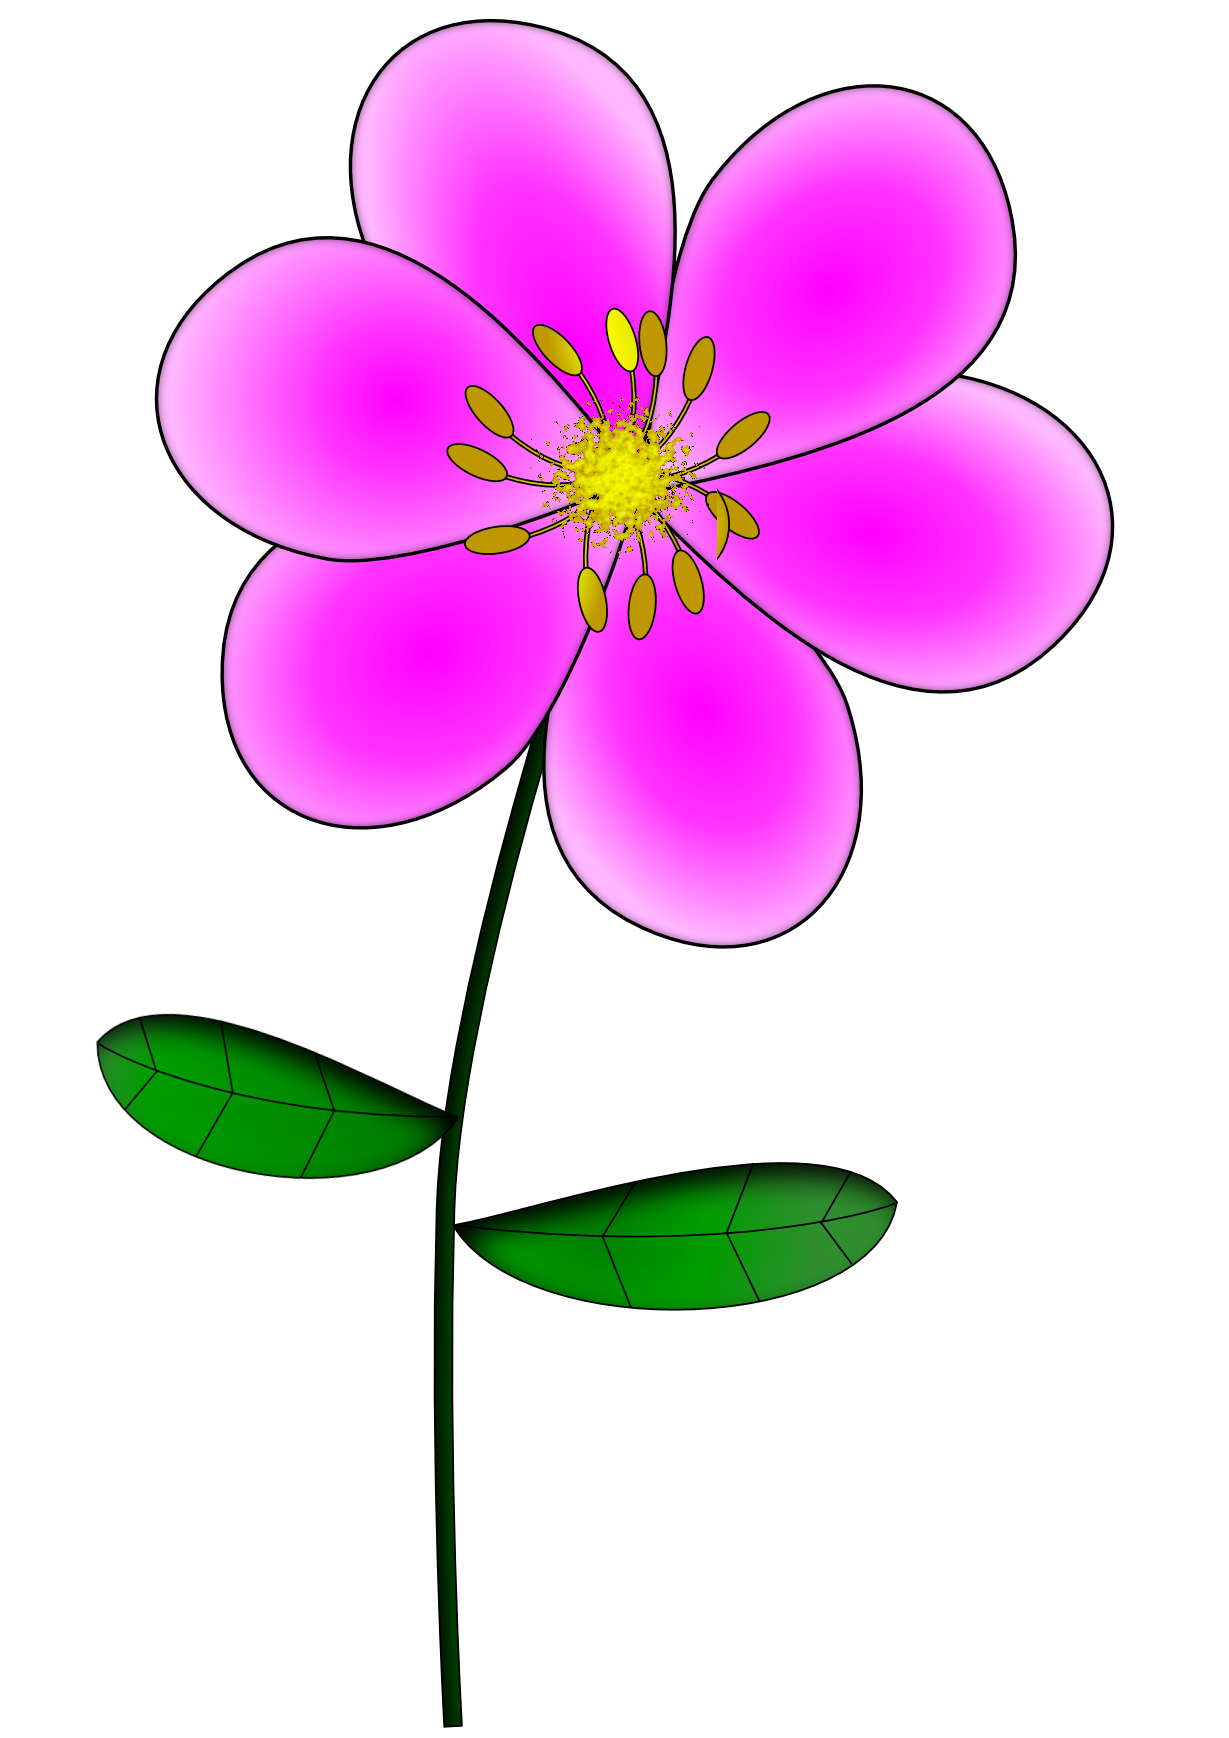 Blooming flower clipart png library library FLÔRES CUTE | FLÔRES CUTE | Pinterest | Image search png library library